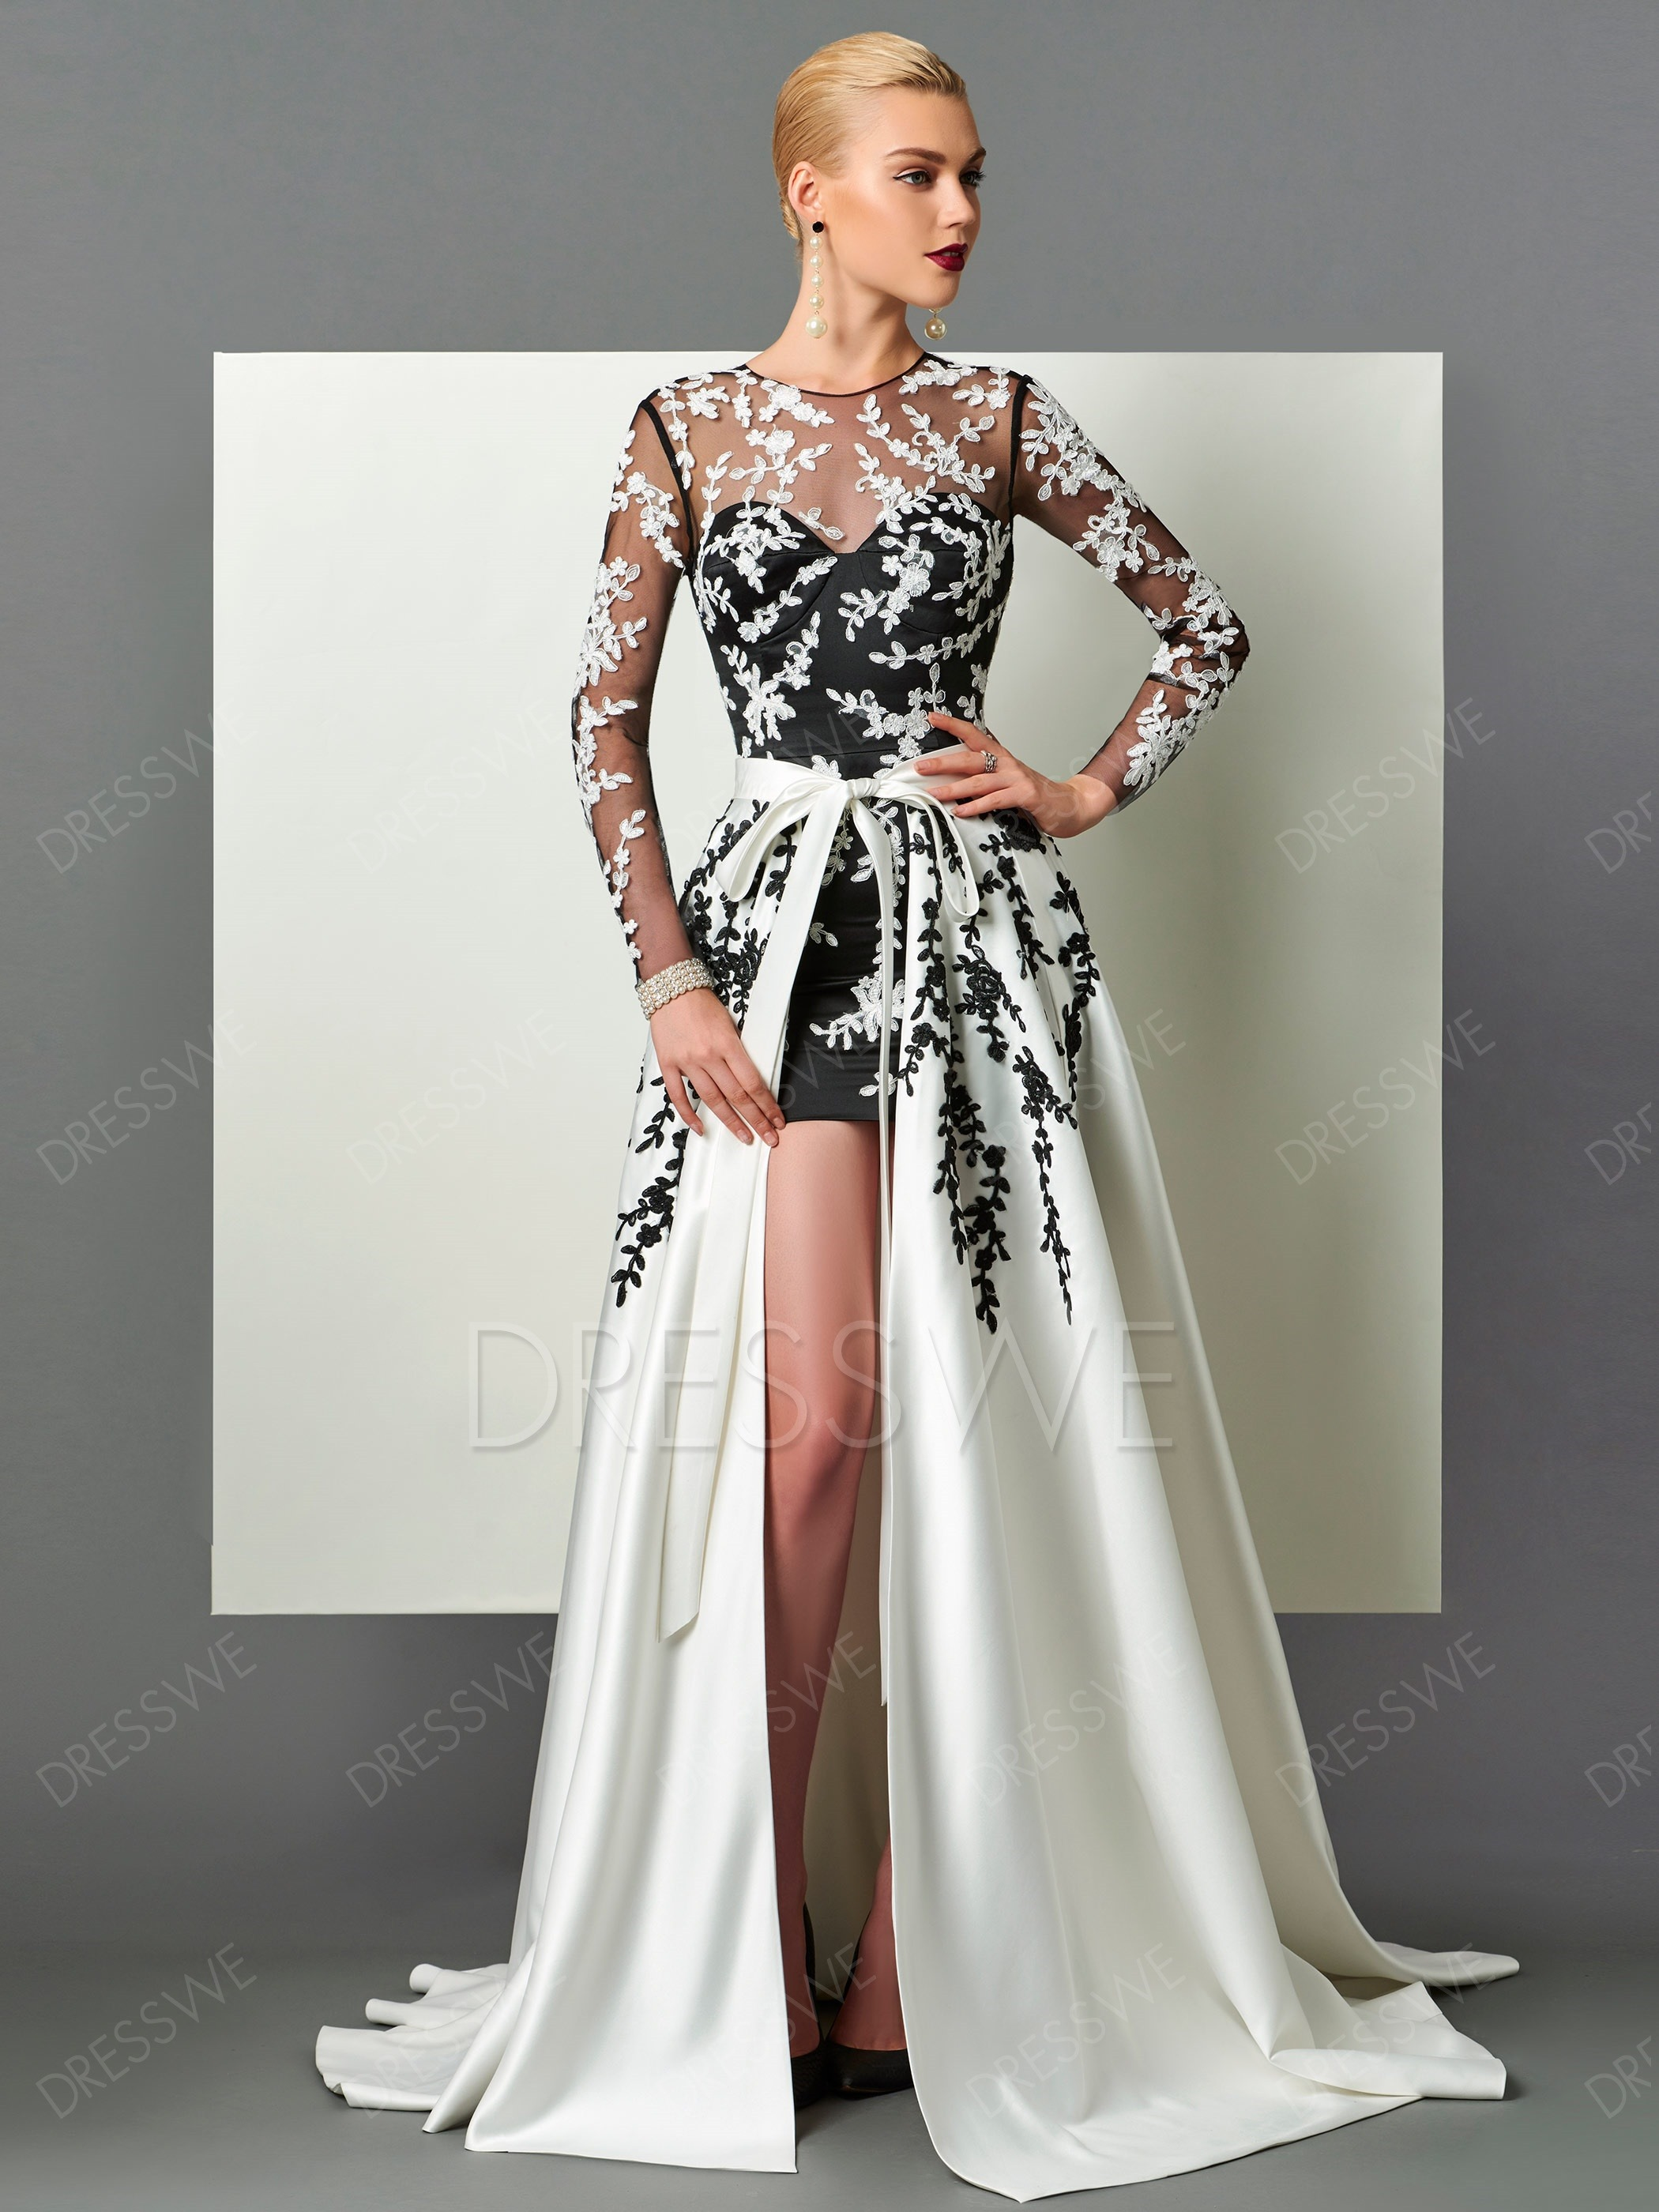 long evening dresses picture: dresswe.com supplies designer long sleeve applique detachable  train long evening dress evening dresses PORGTXV